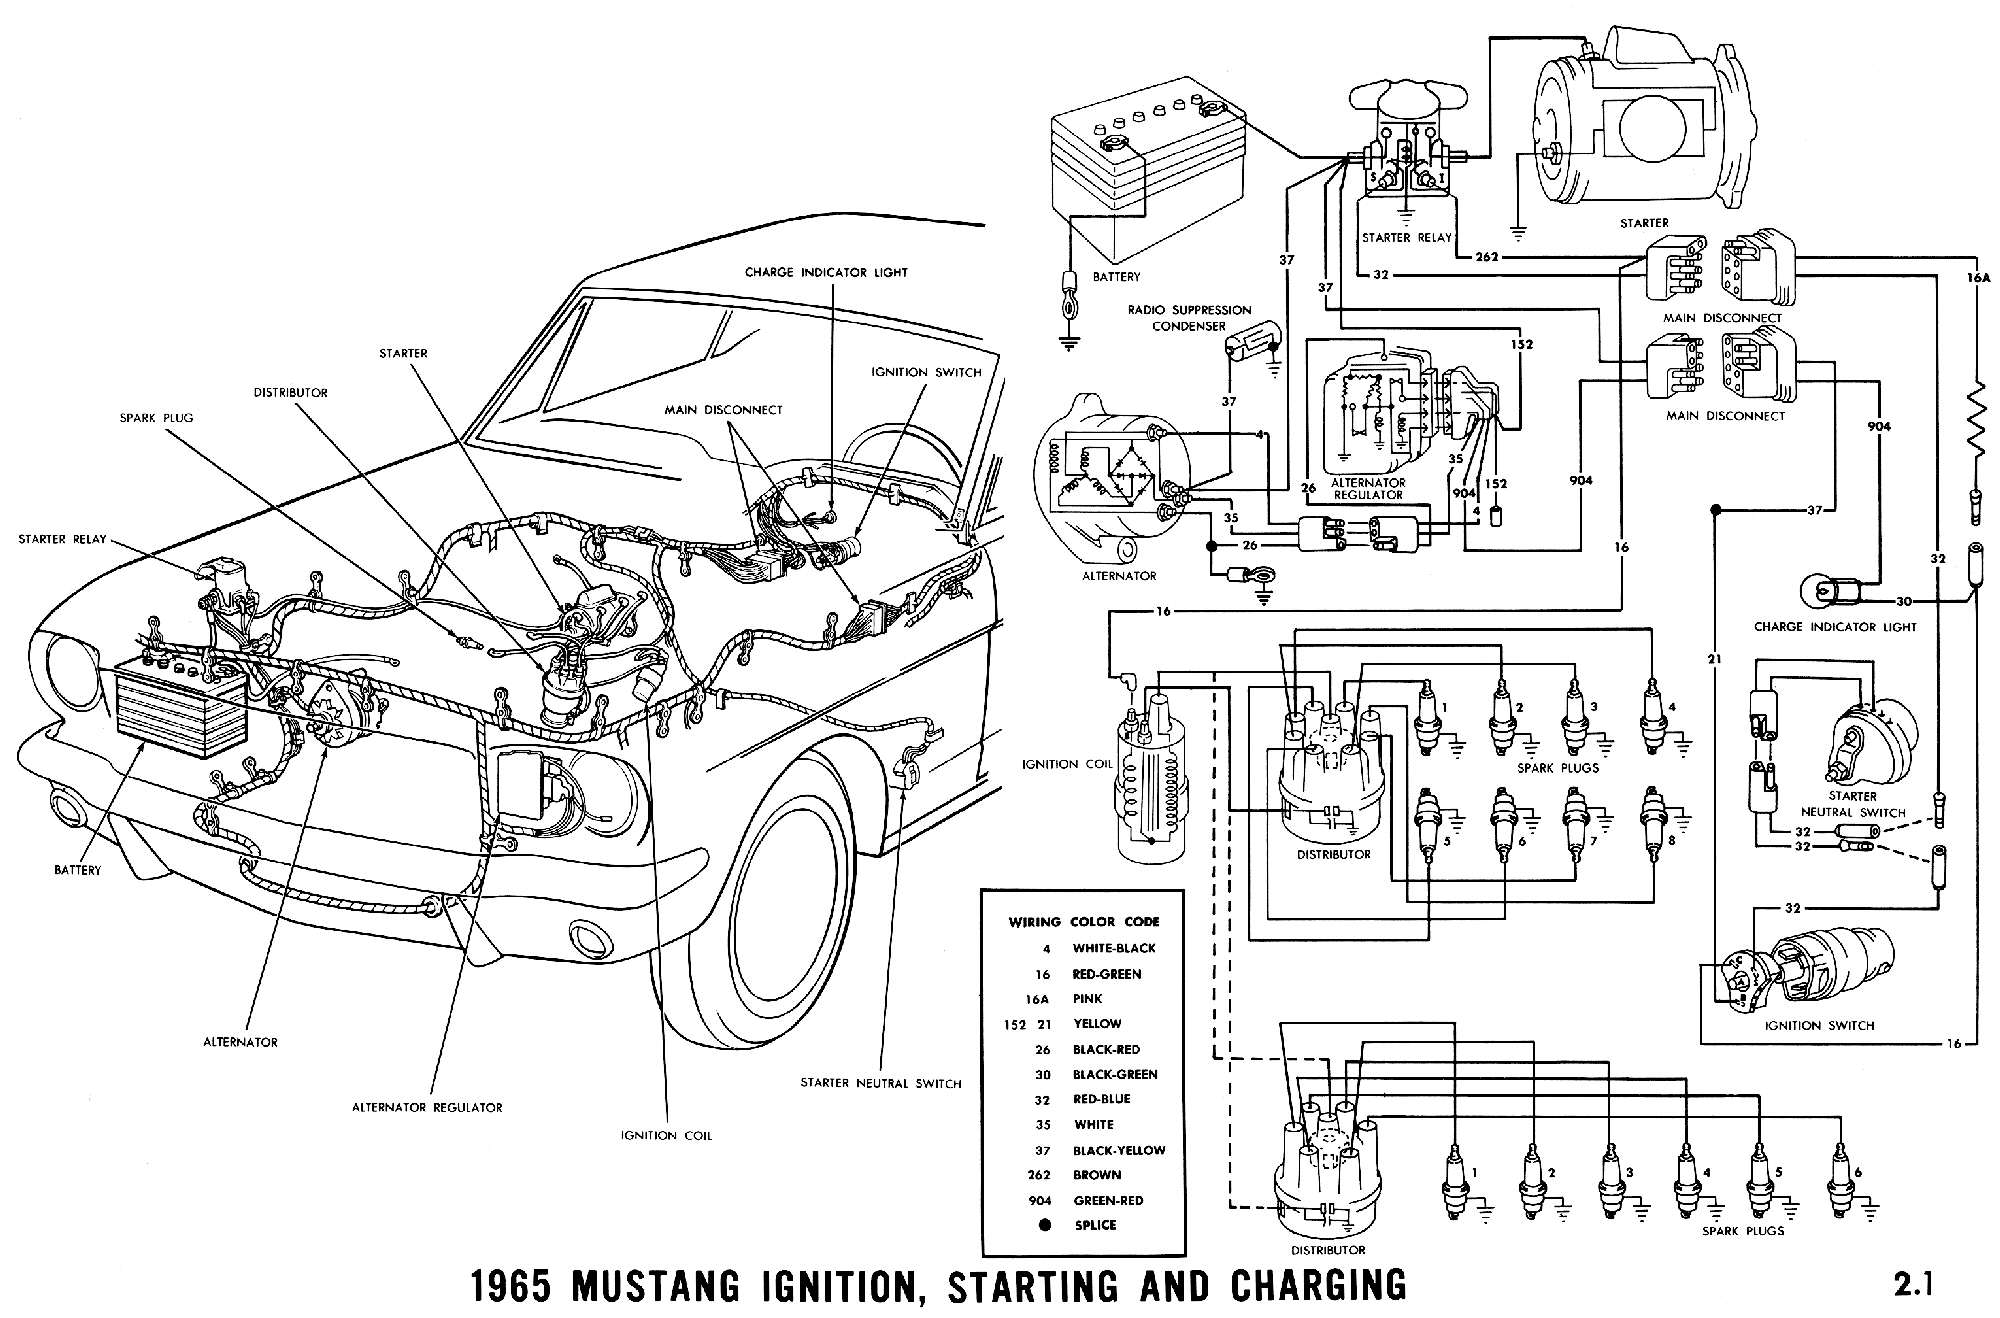 1965c 1965 mustang wiring diagram 1965 lincoln wiring diagram \u2022 wiring 1965 mustang wiring diagram free at honlapkeszites.co